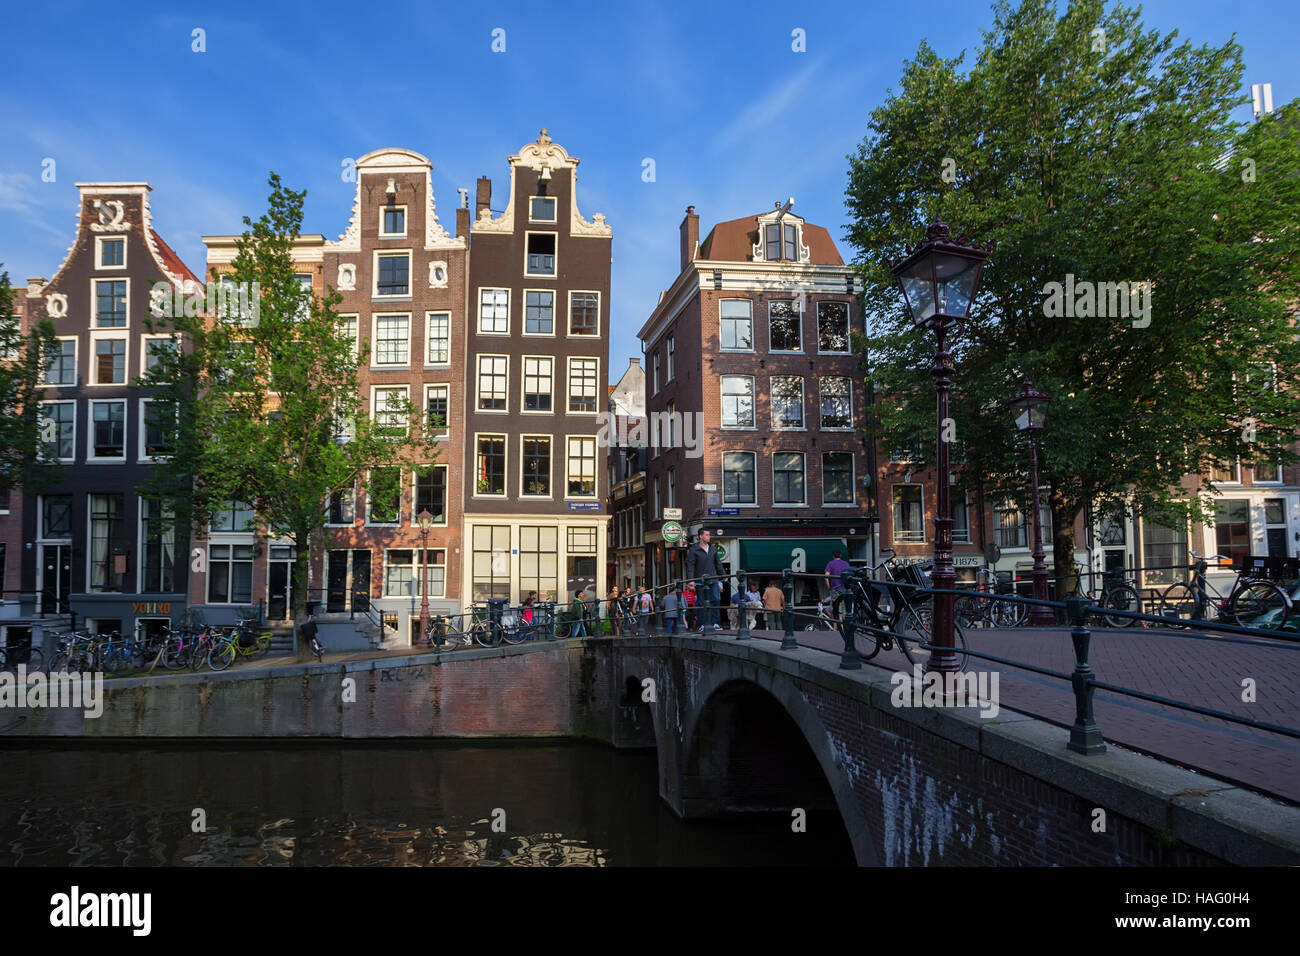 AMSTERDAM - CIRCA JUIN 2014 Photo Stock